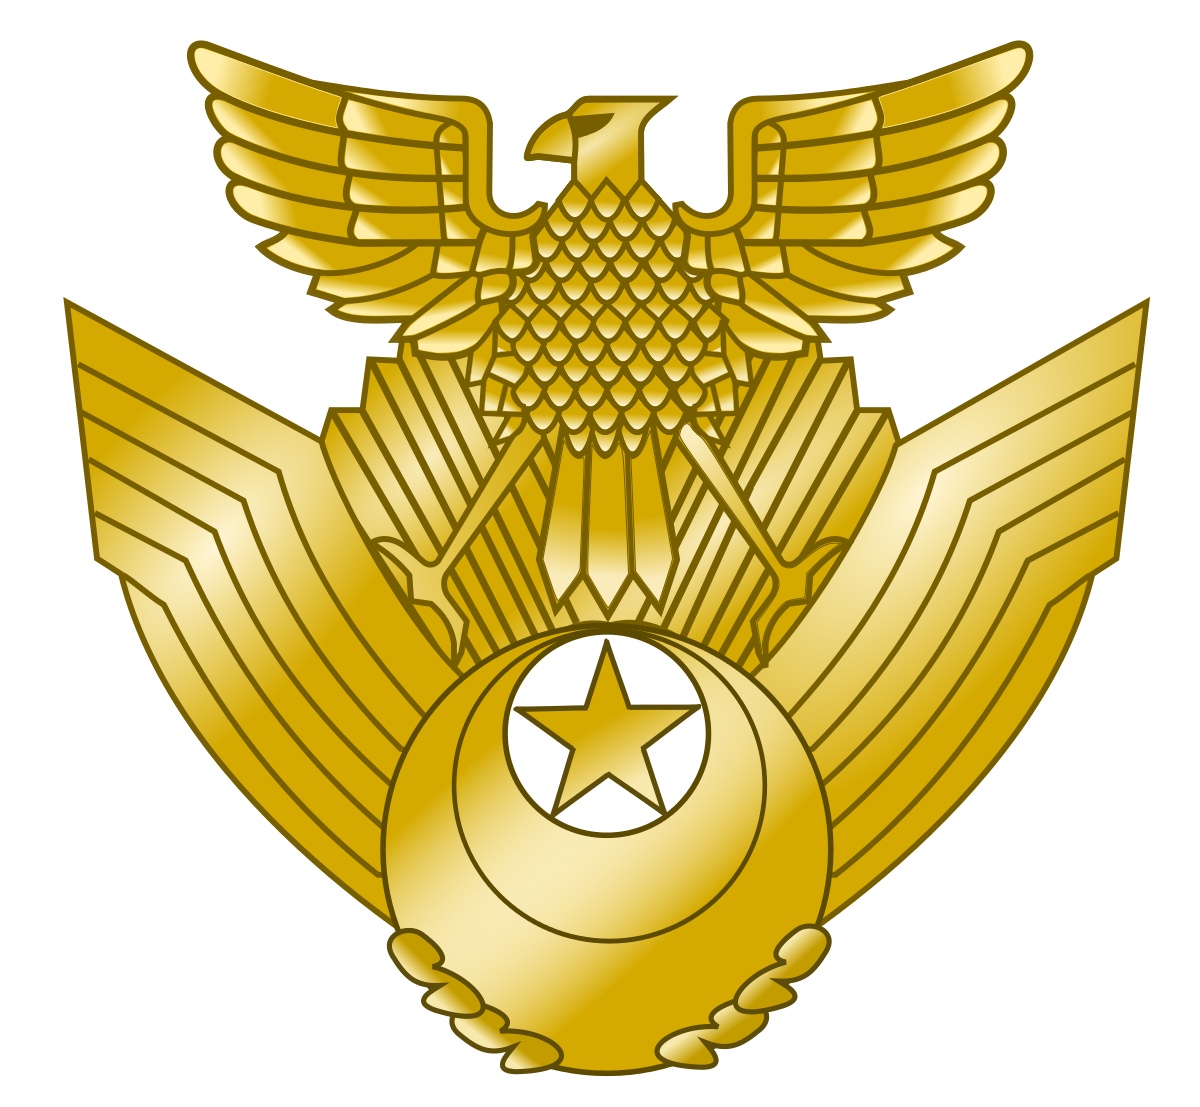 Clipart defence force clipart freeuse library Japan Air Self-Defense Force - Wikipedia clipart freeuse library